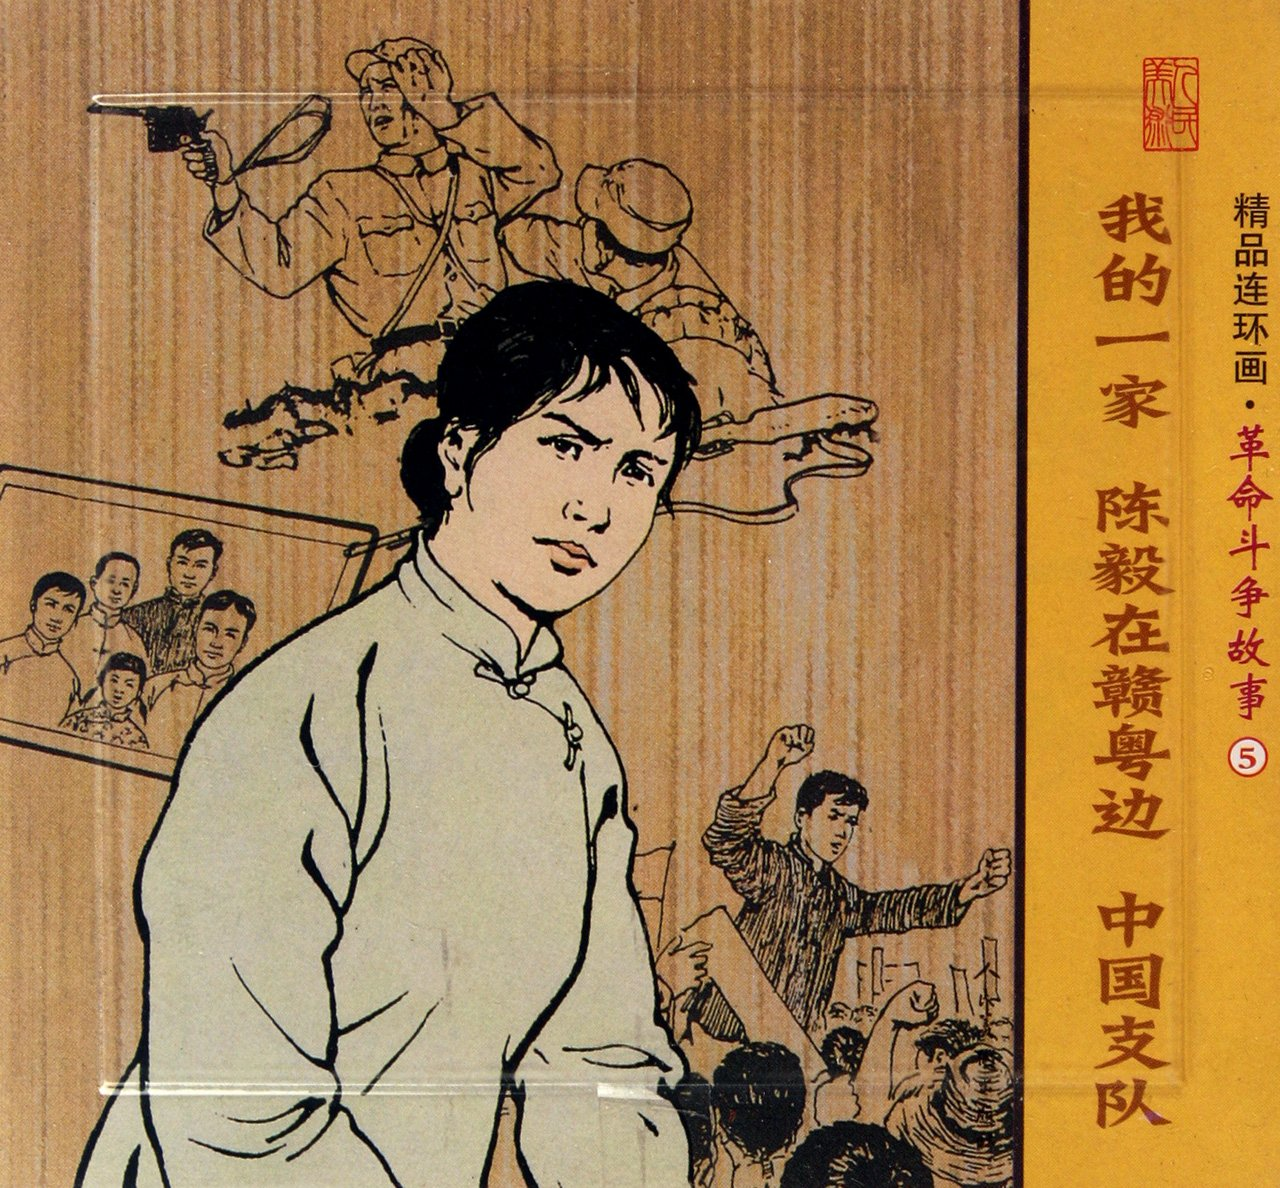 My Family, Chen Yi in Jianxi and Guangdong Border Area - Quality Comics- Revolutionary Struggle Story - 5- (Three Volumes) (Chinese Edition) pdf